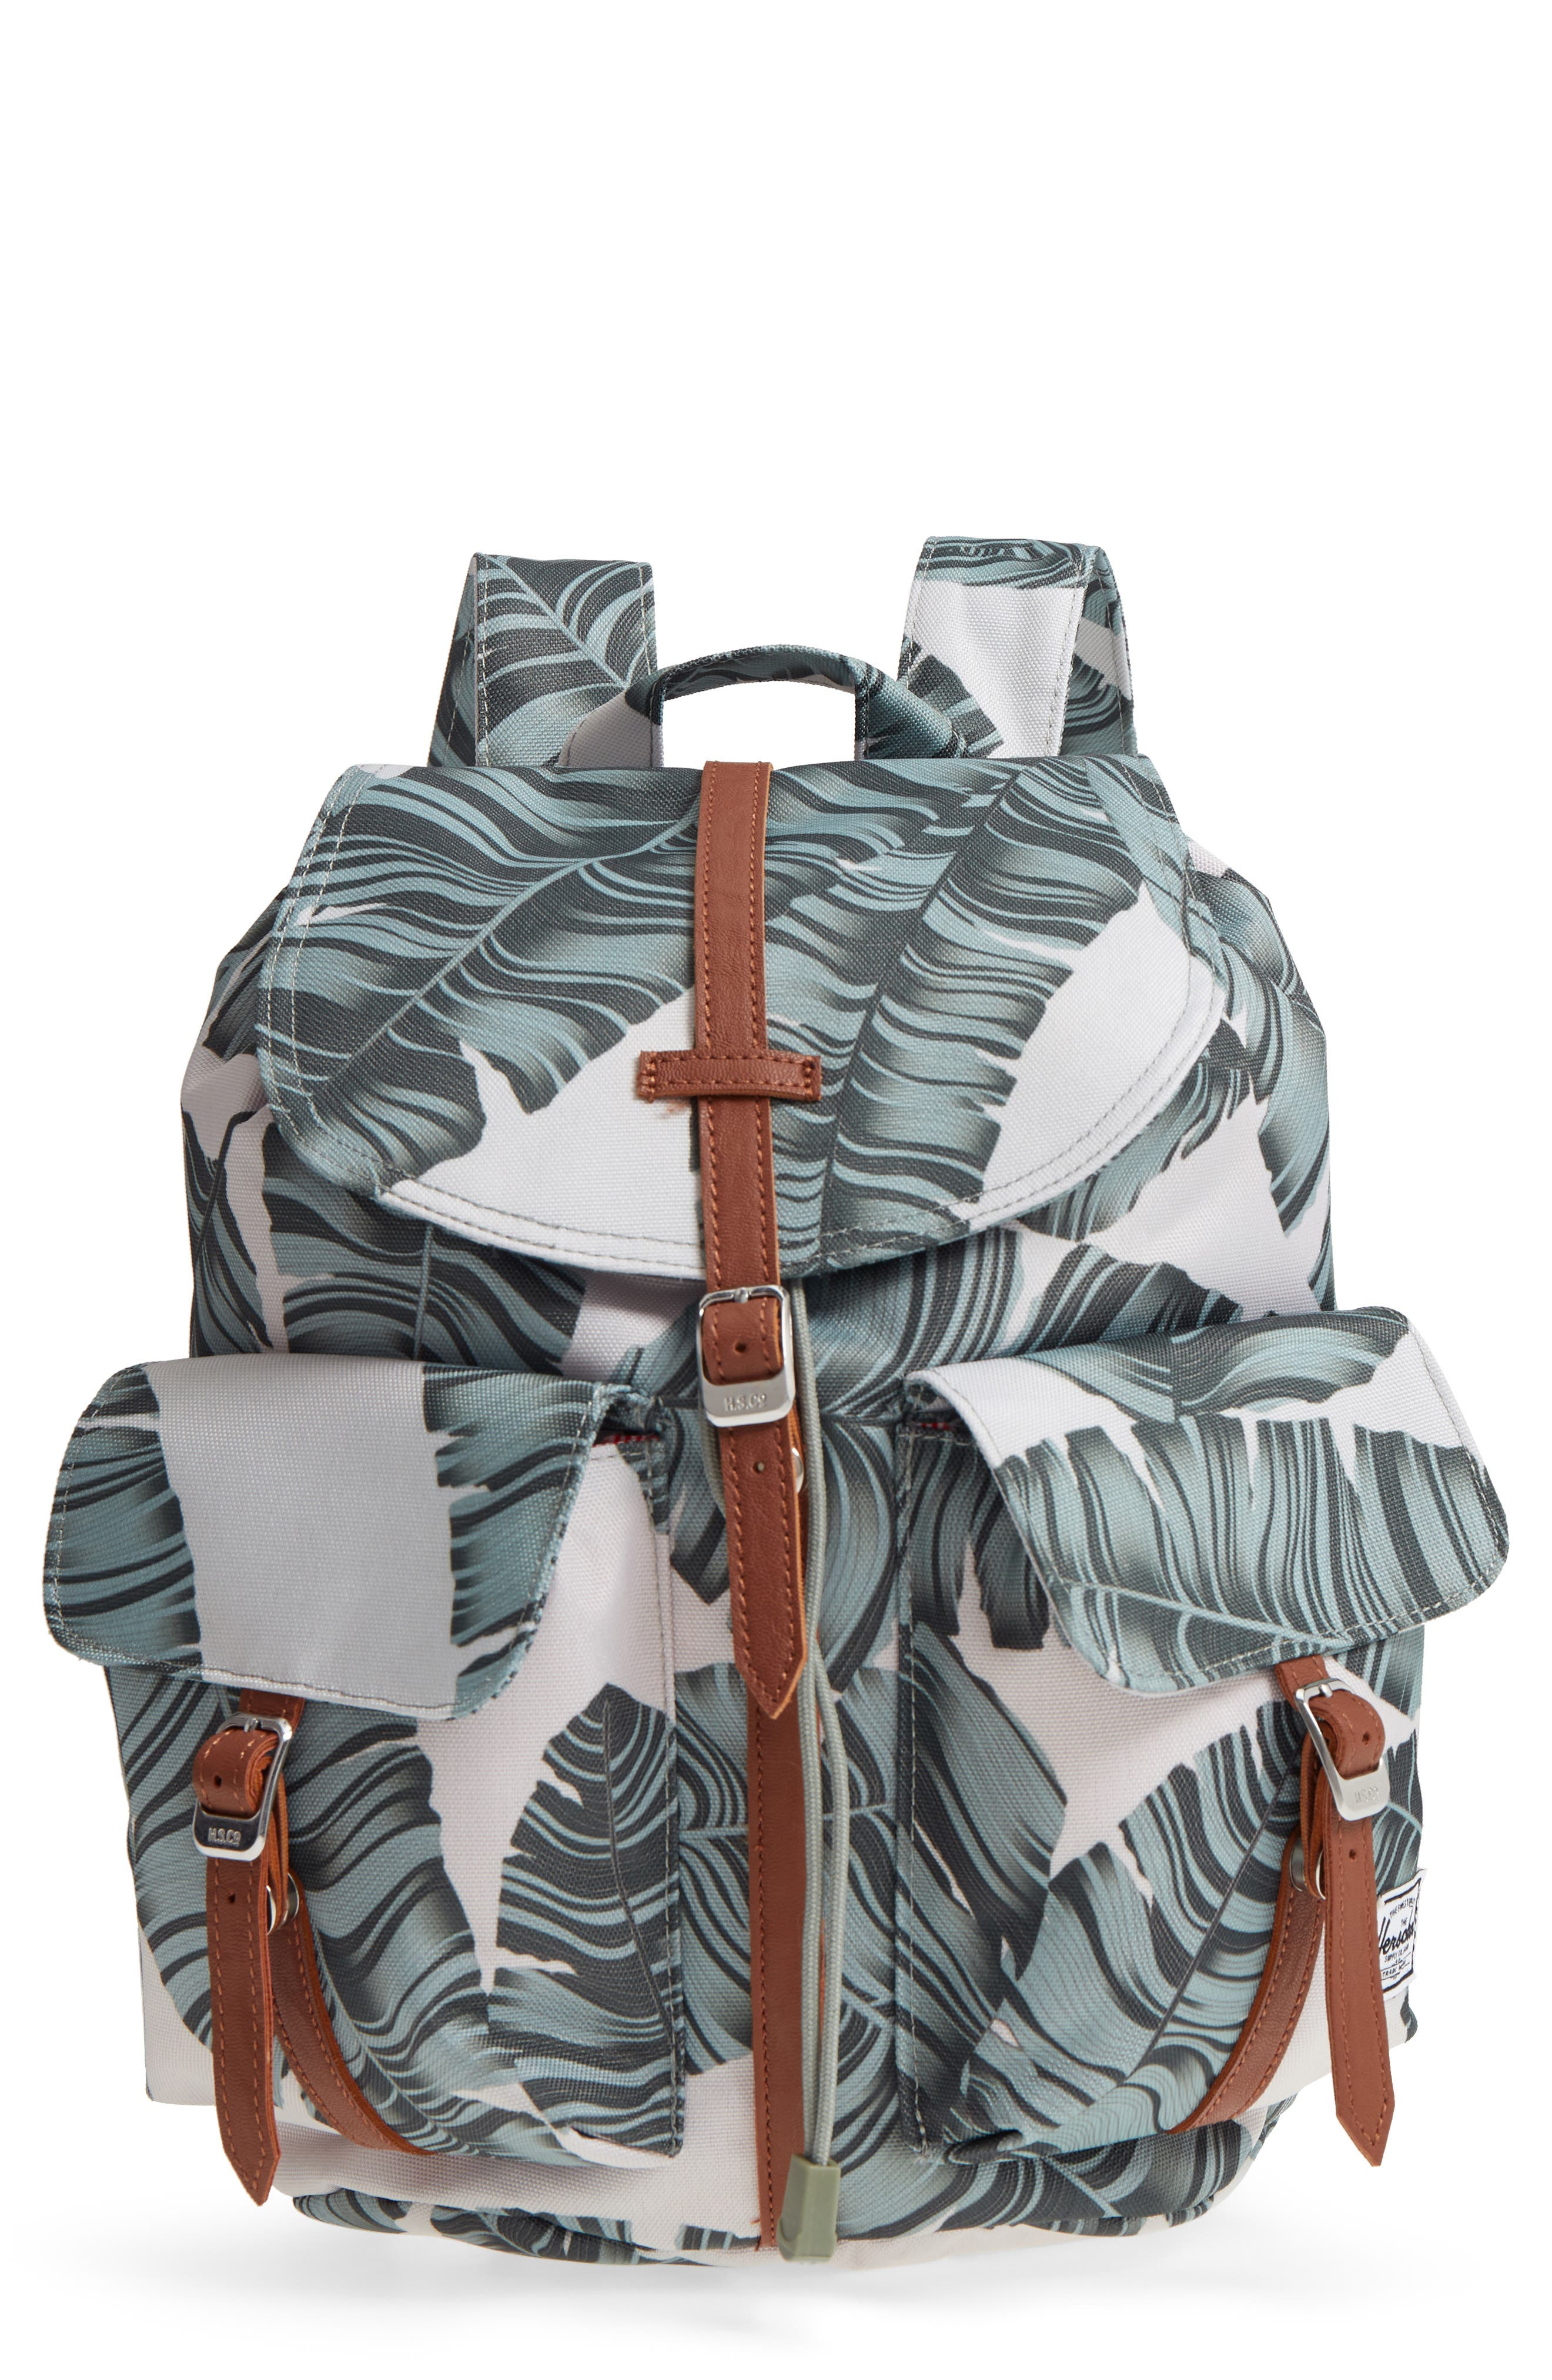 X-Small Dawson Backpack,                             Main thumbnail 1, color,                             Silver Birch Palm